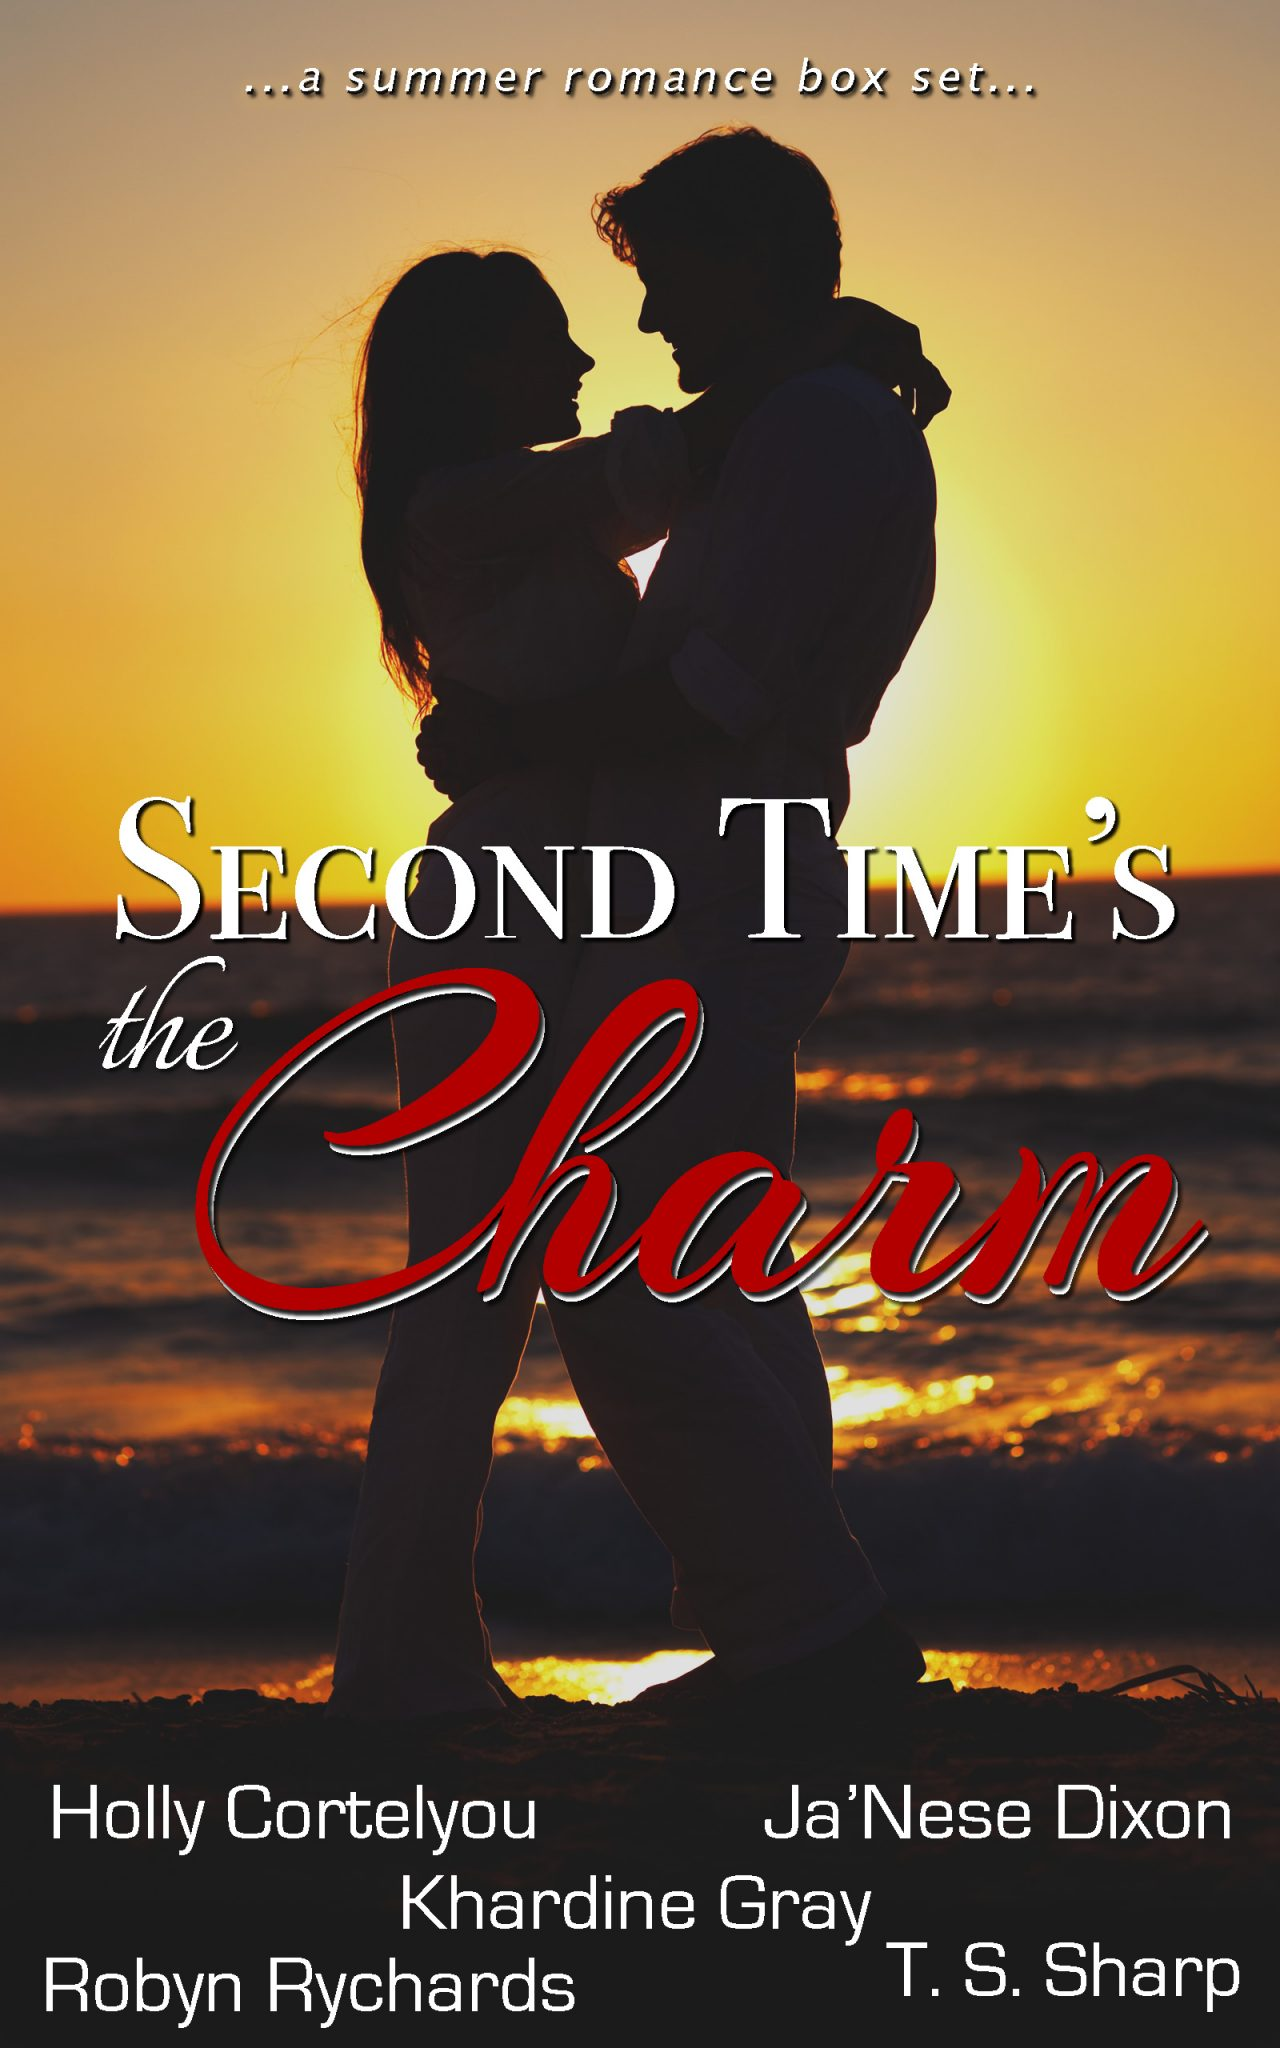 Second Time's the Charm: A Summer Romance Boxed Set